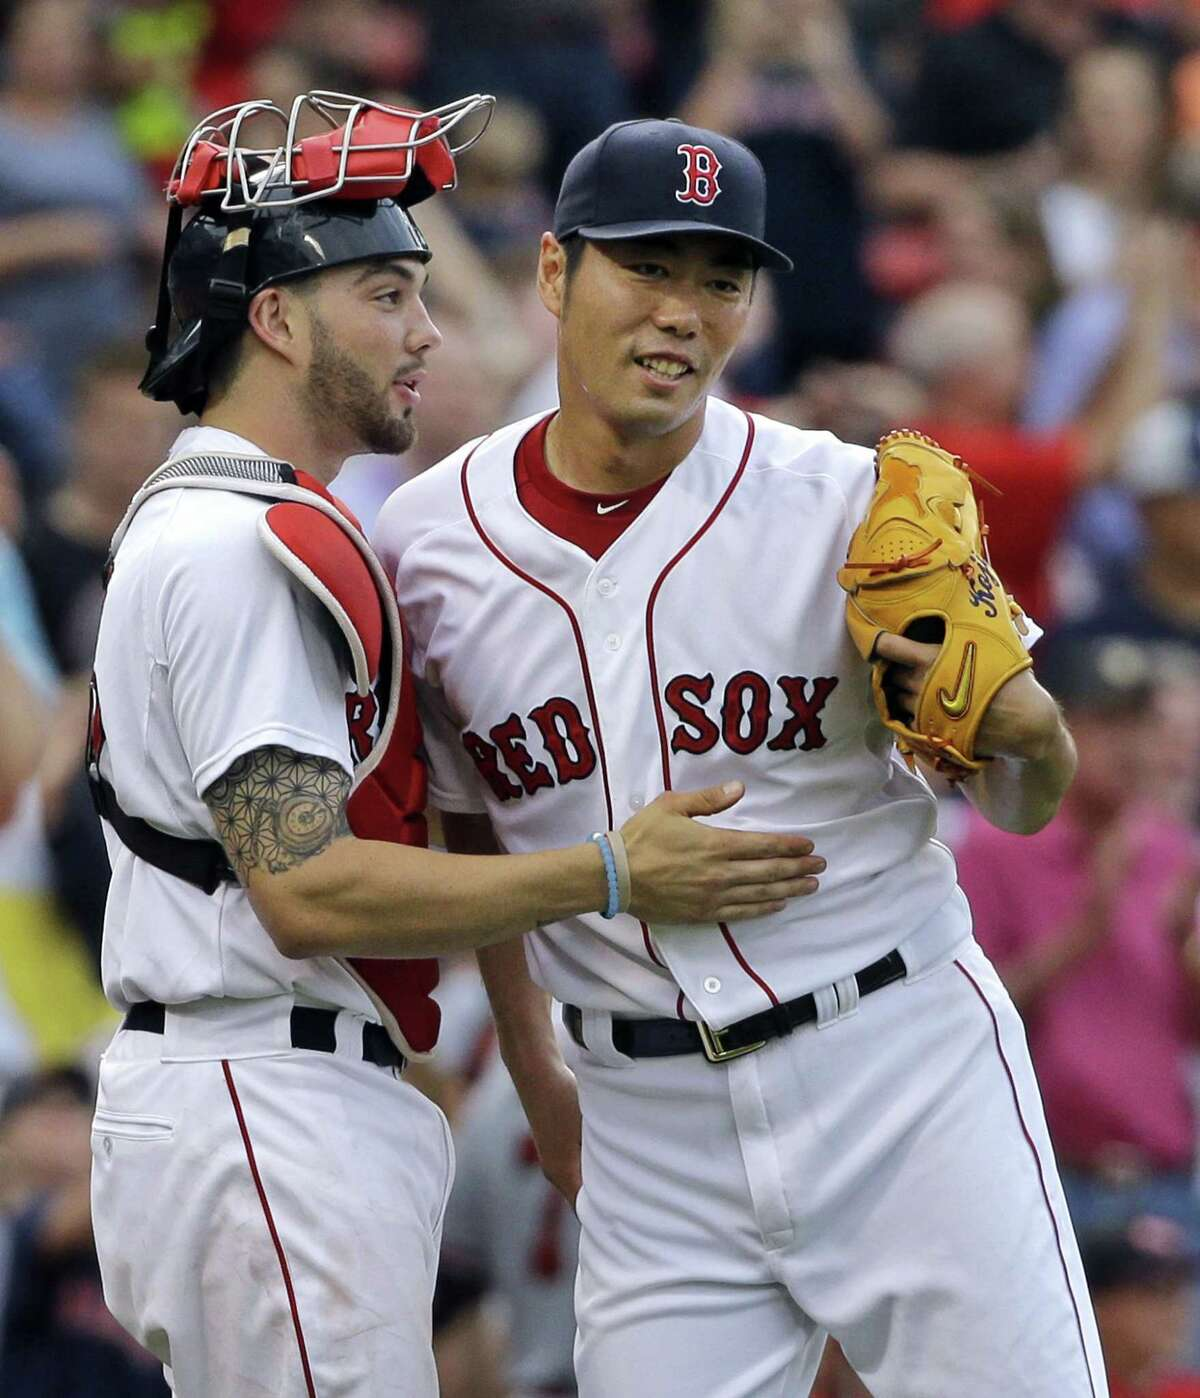 Boston relief pitcher Koji Uehara celebrates with catcher Blake Swihart after the Red Sox defeated the Braves 9-4 at Fenway Park on Tuesday.